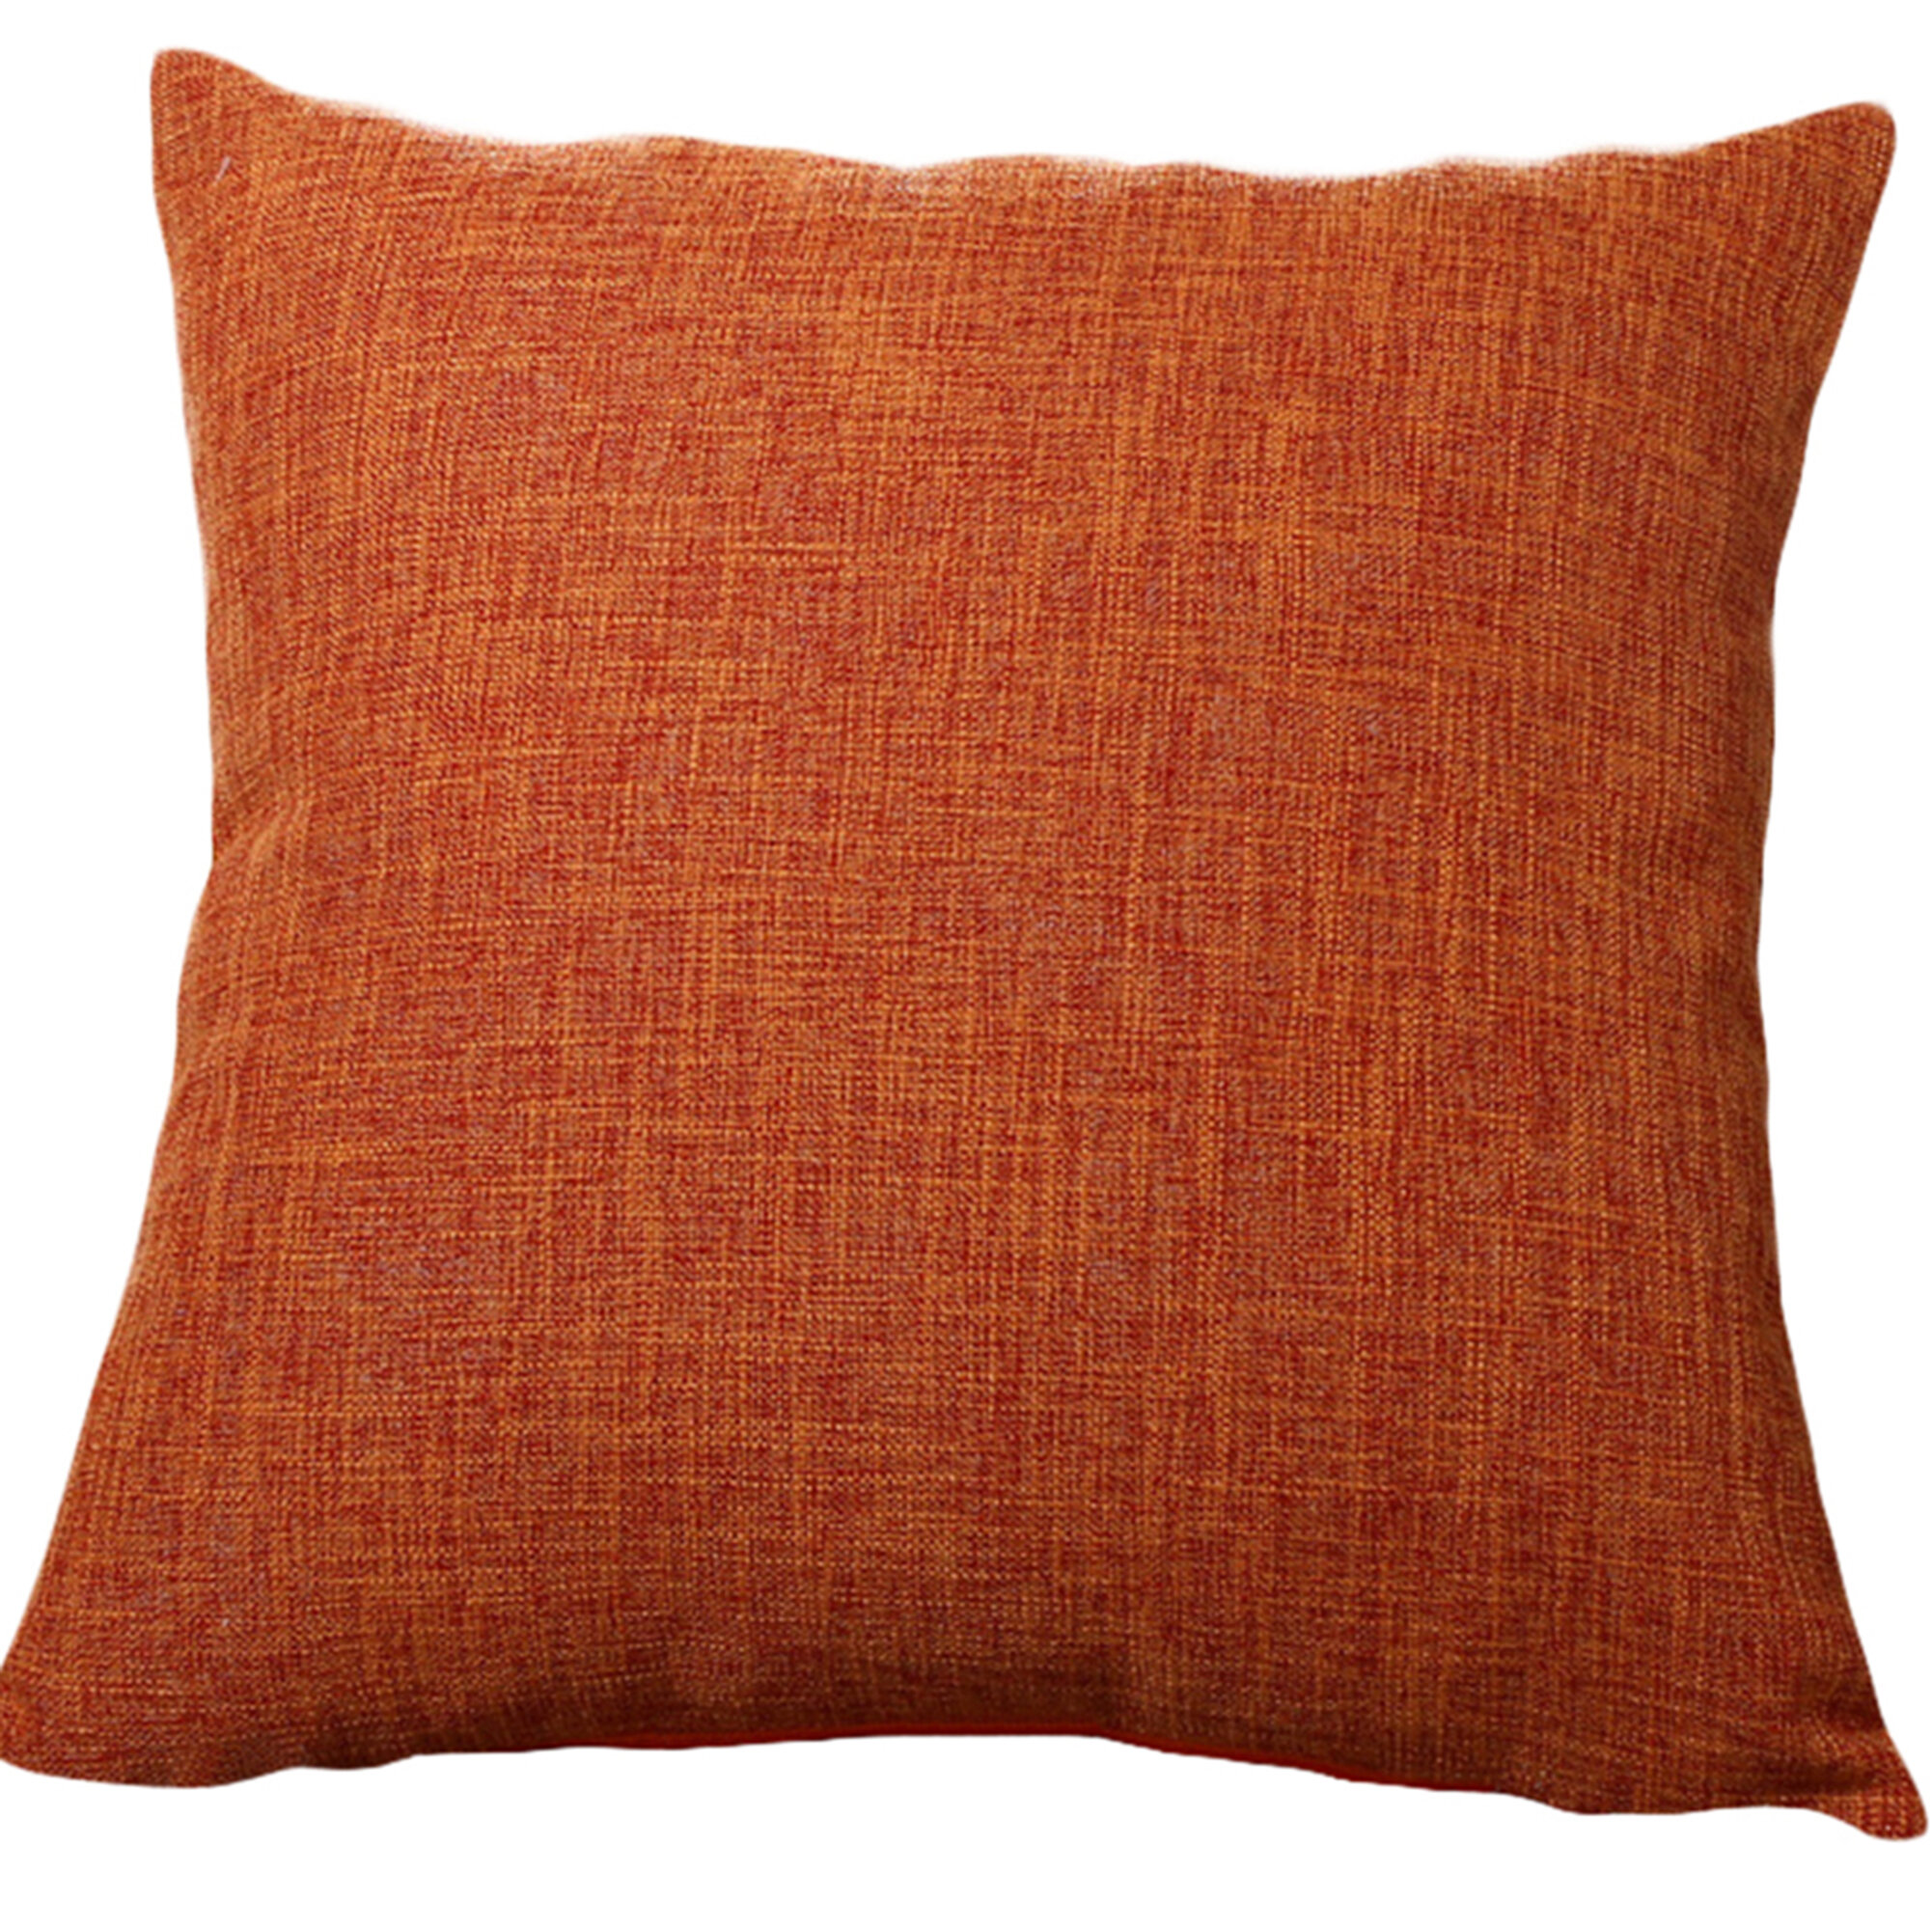 envelope pillow tutorial diy inspired.htm throw pillows   decorative pillows you ll love in 2020  throw pillows   decorative pillows you